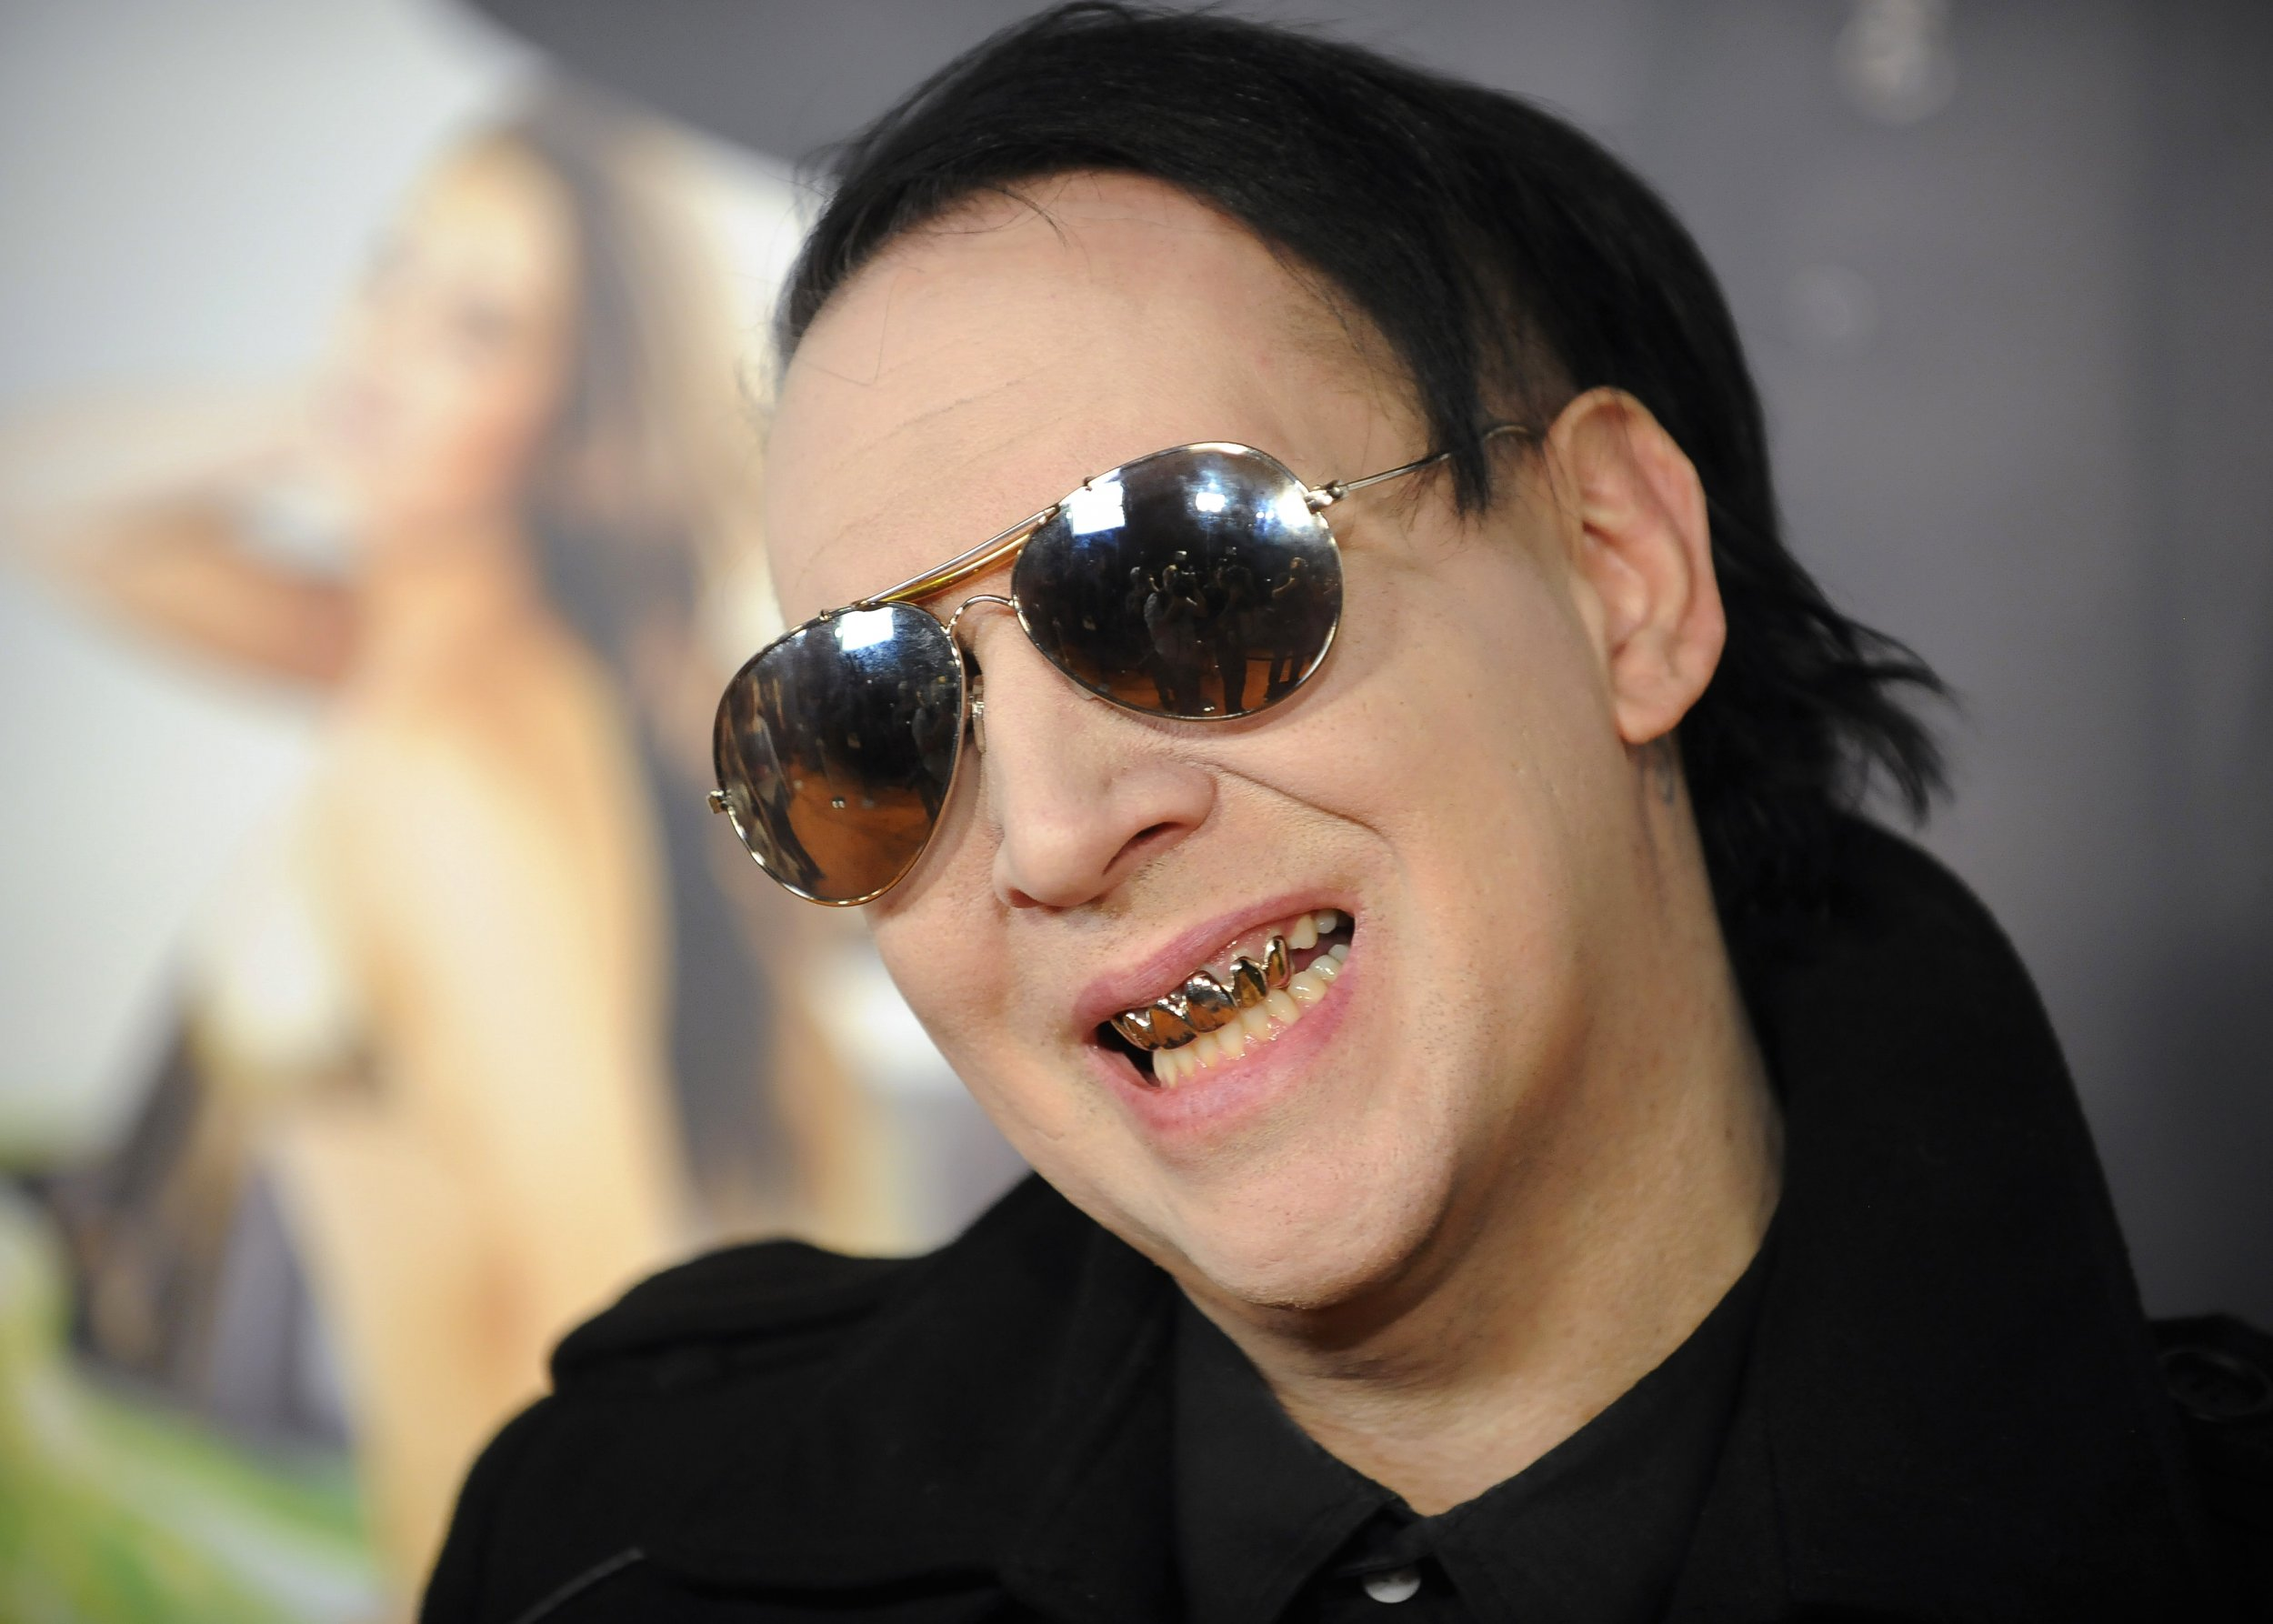 Who is marilyn manson dating now 2012